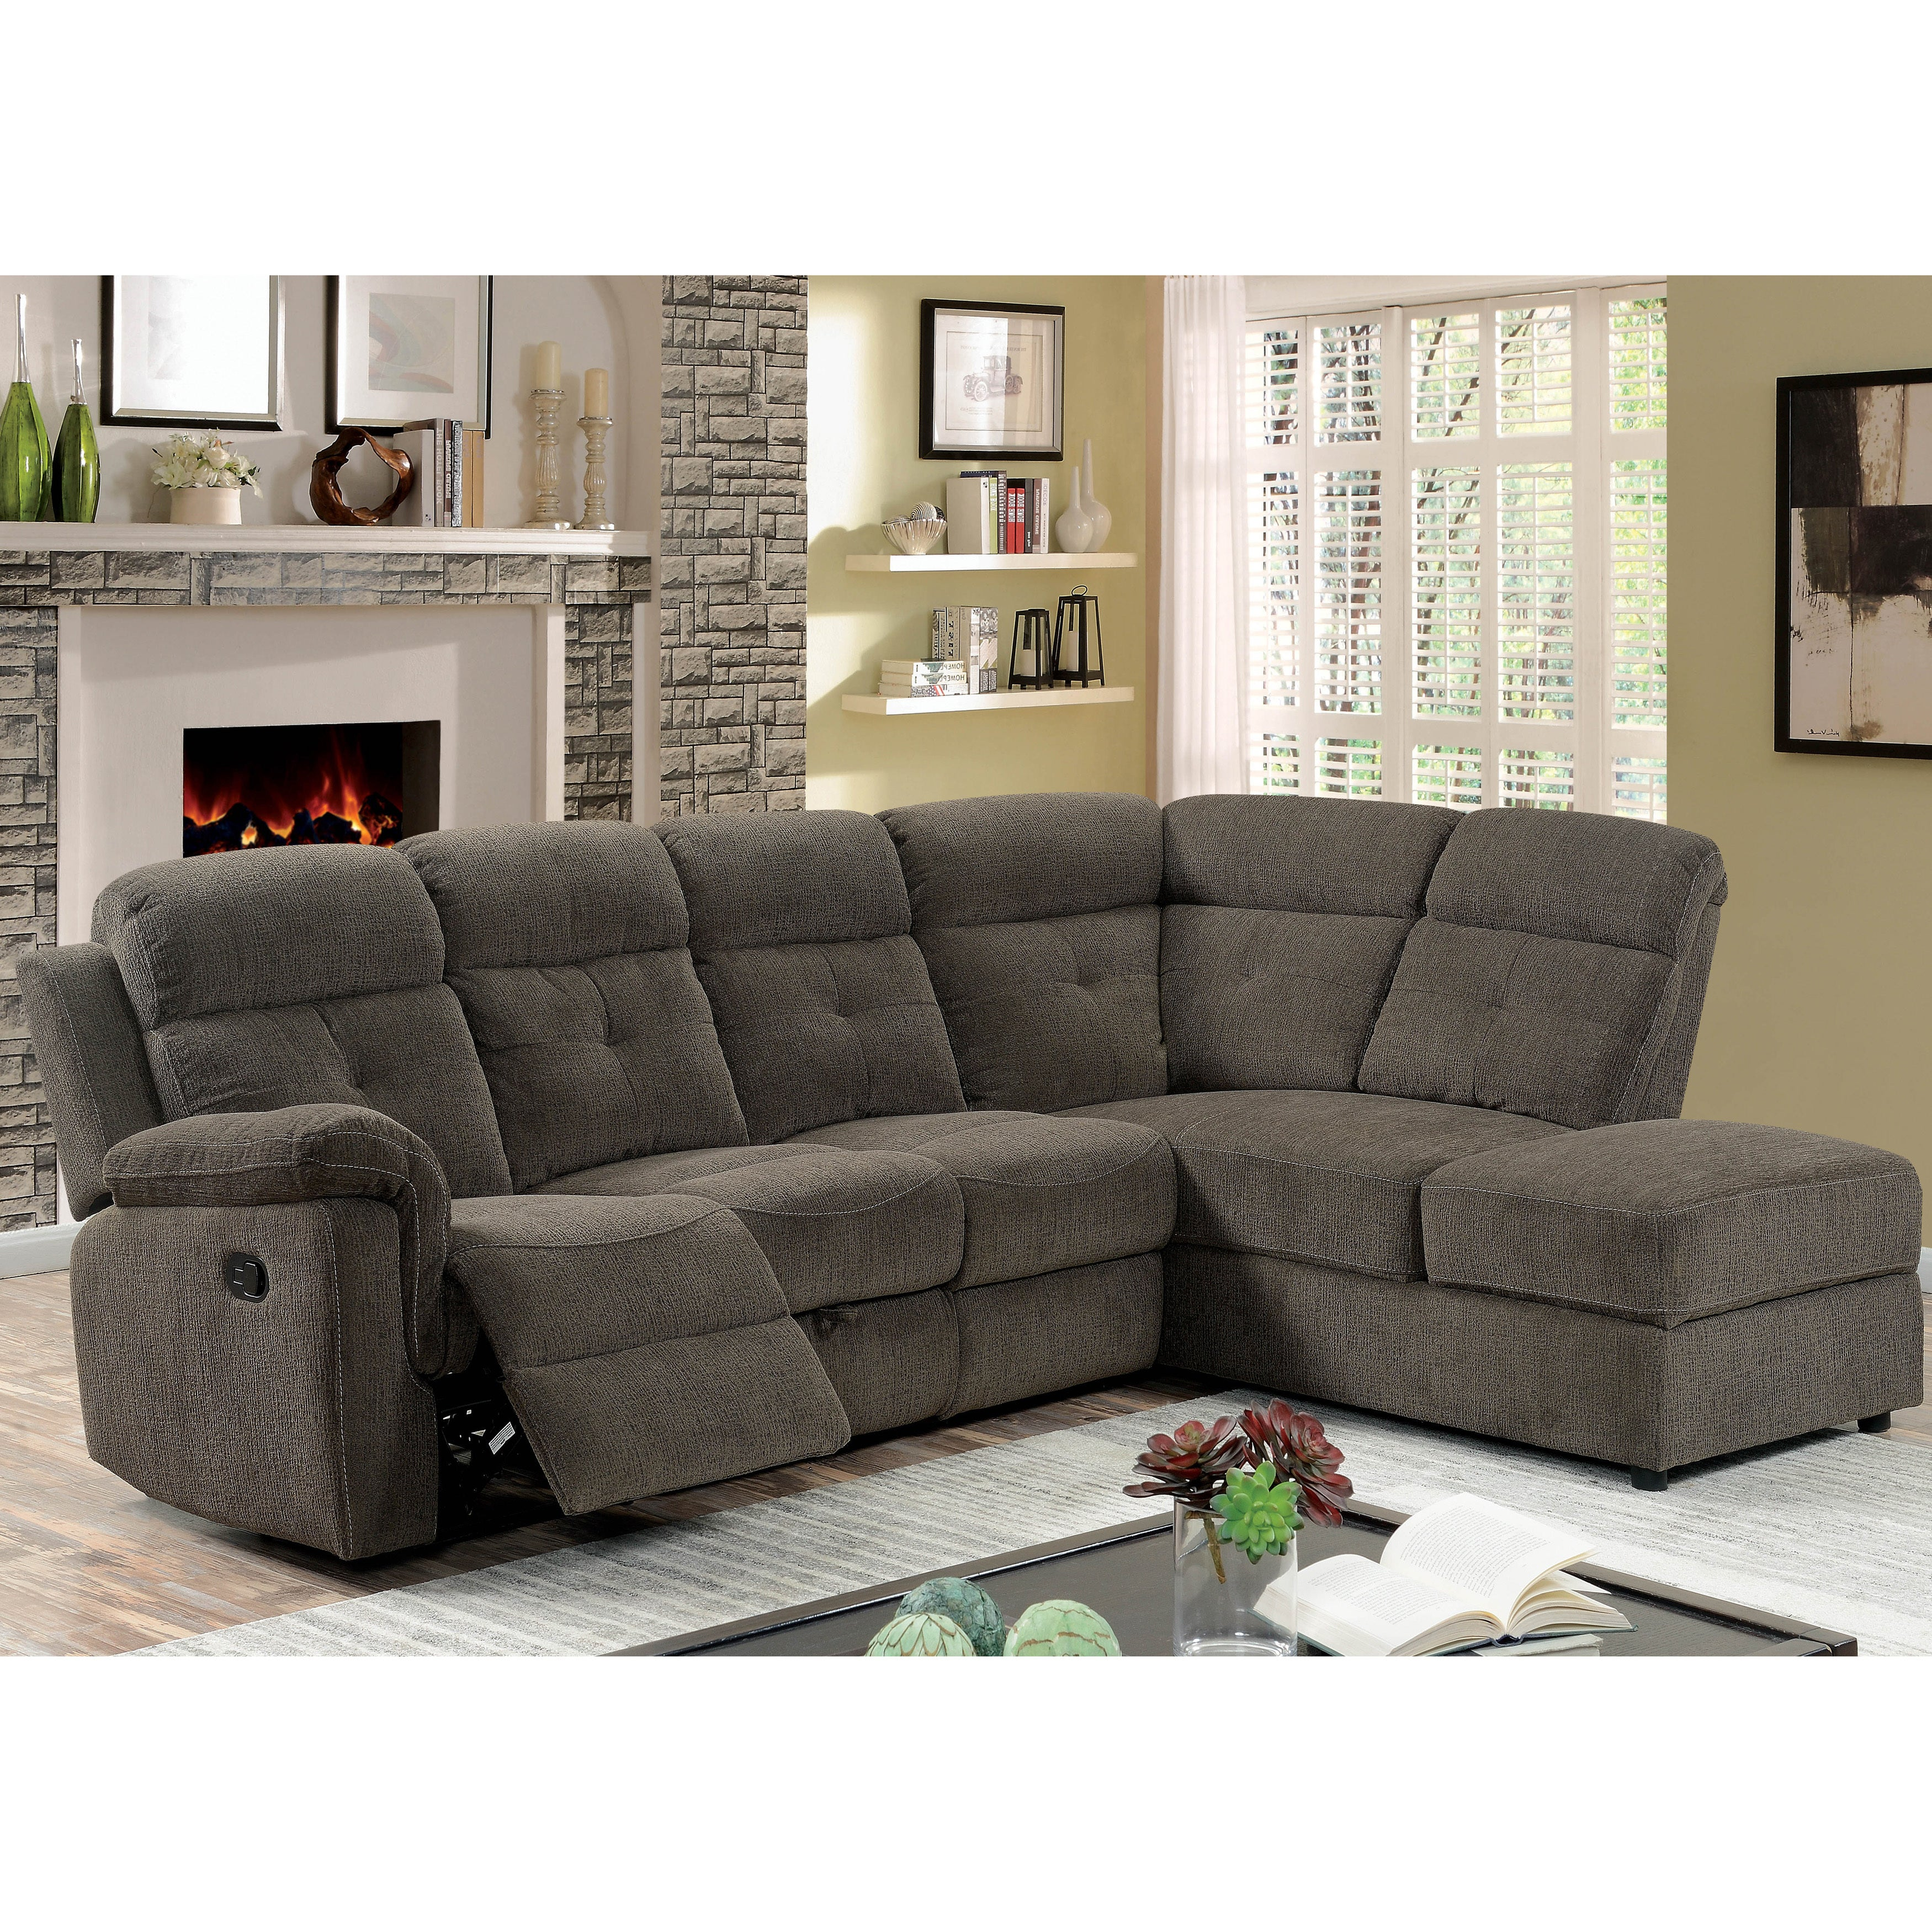 Furniture of America Russell Grey Storage Linen Reclining Sectional